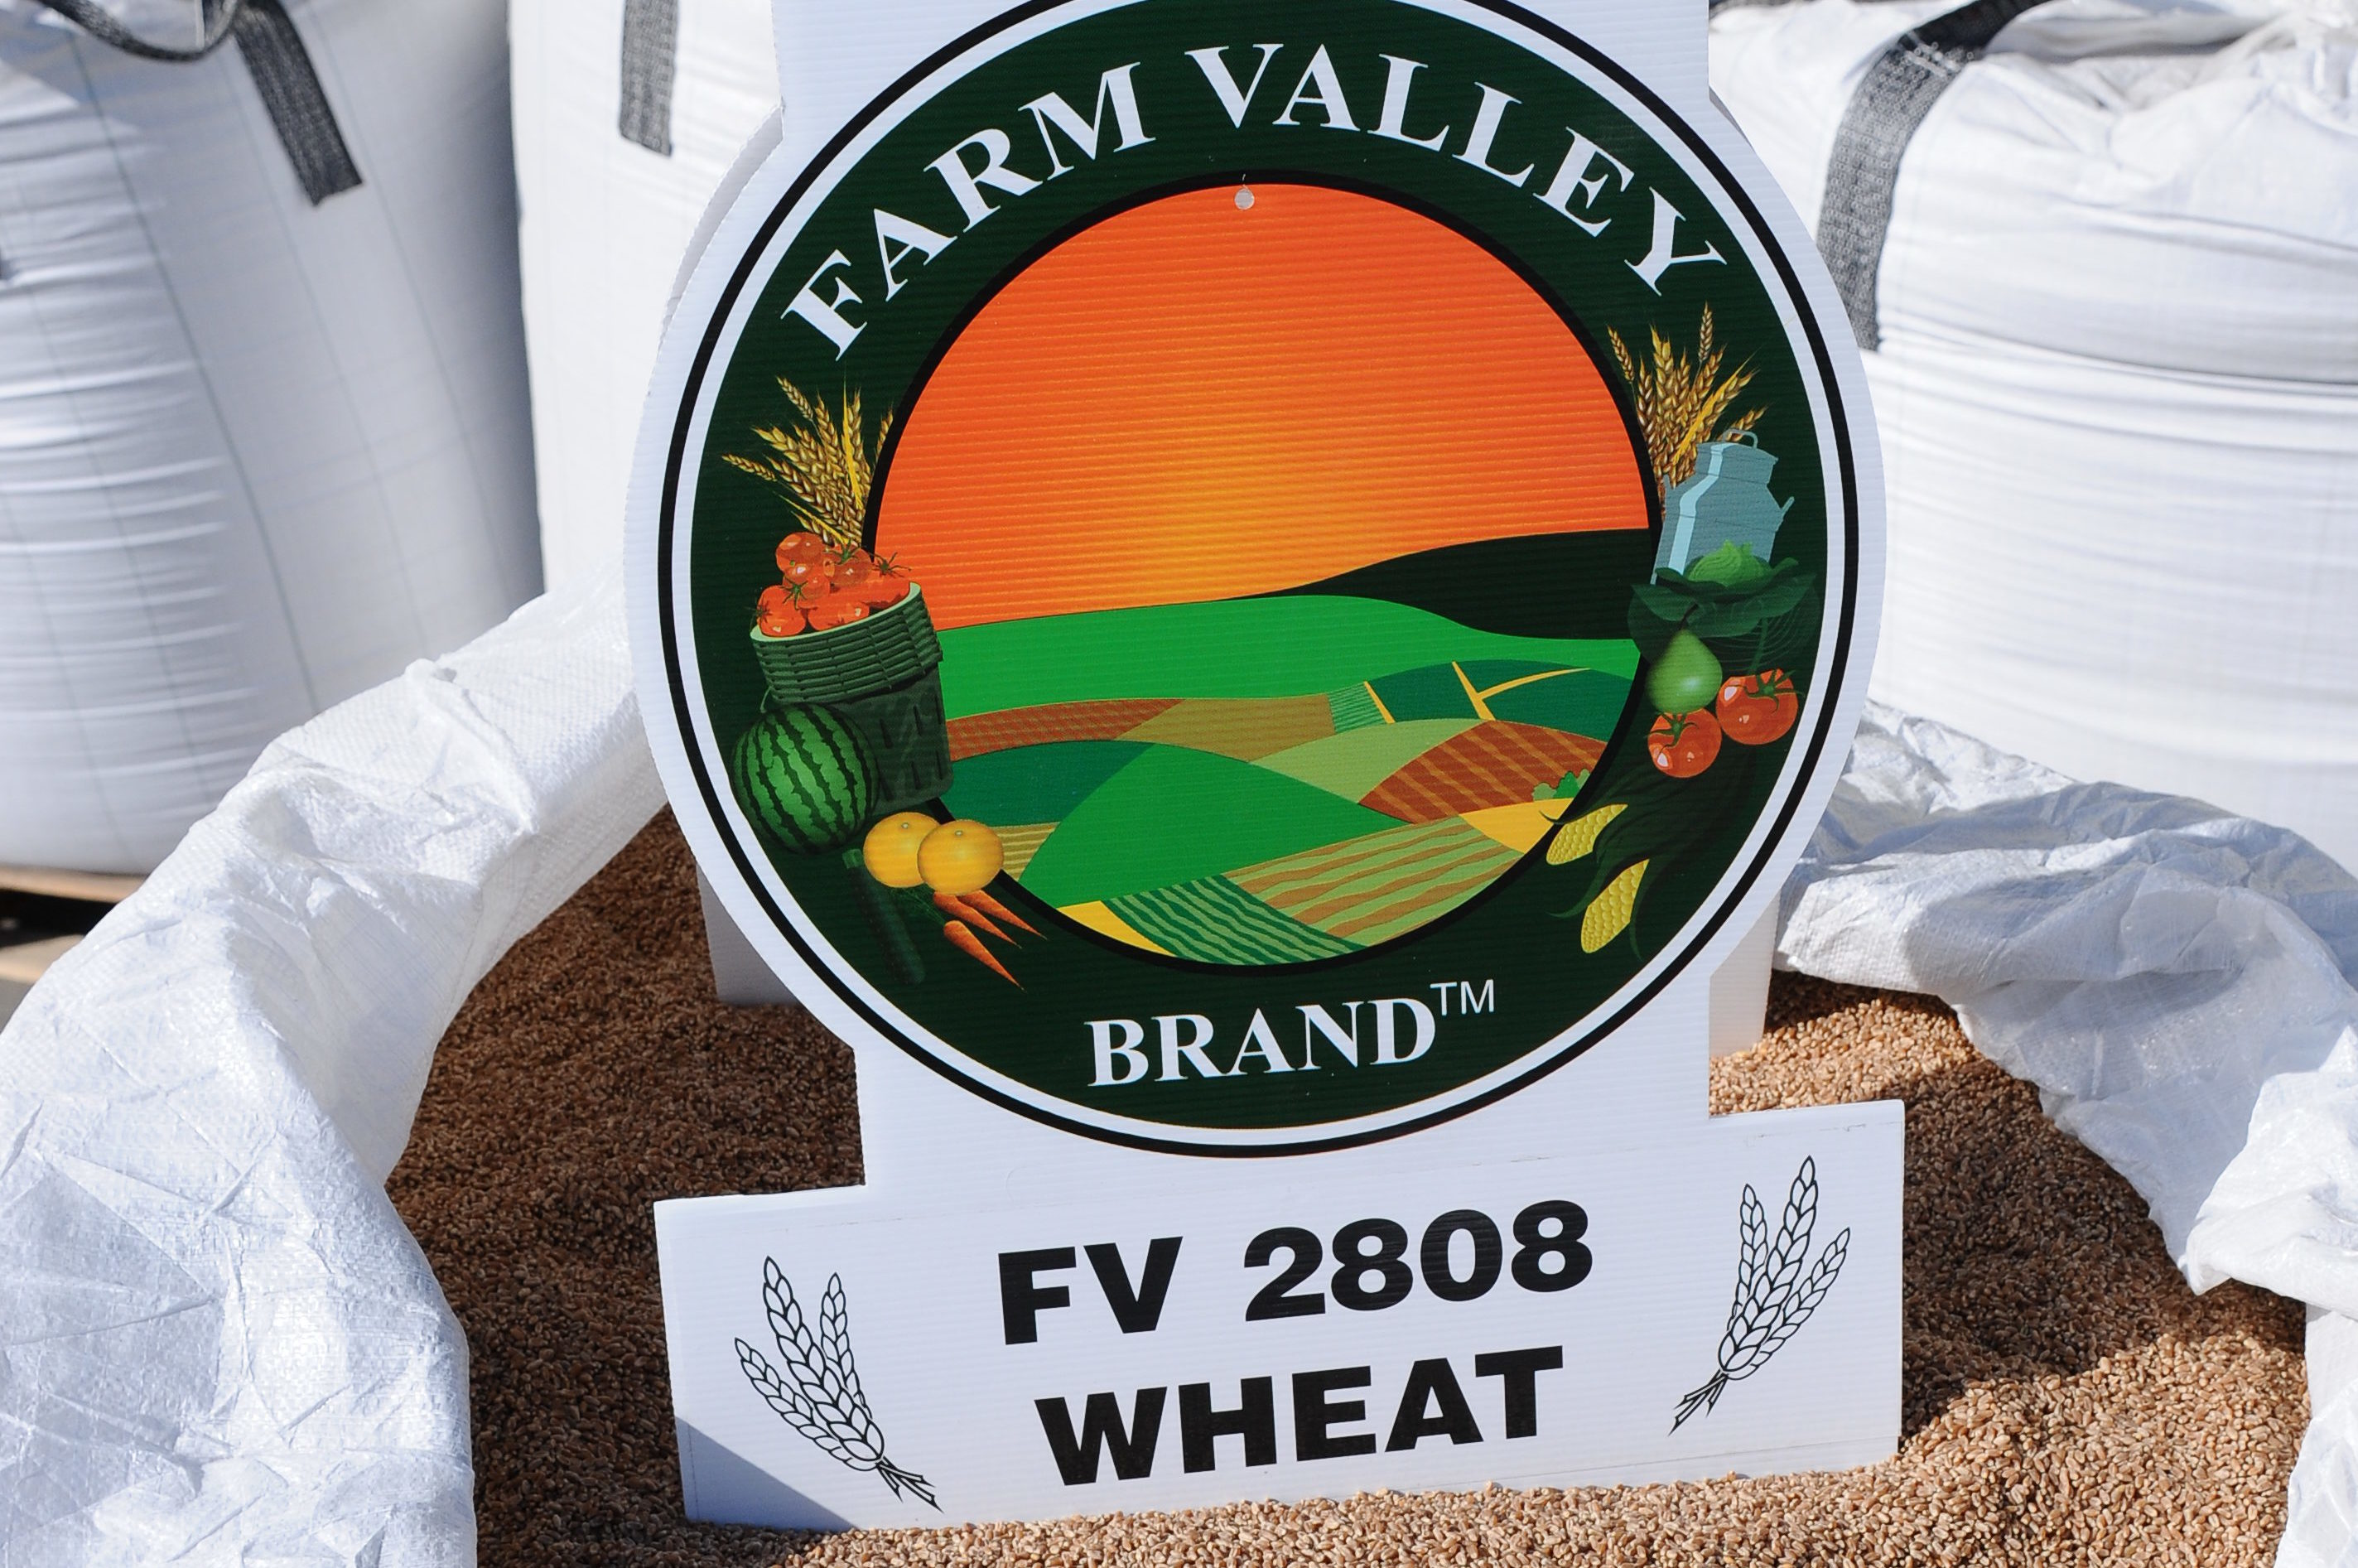 FV 2808 Wheat